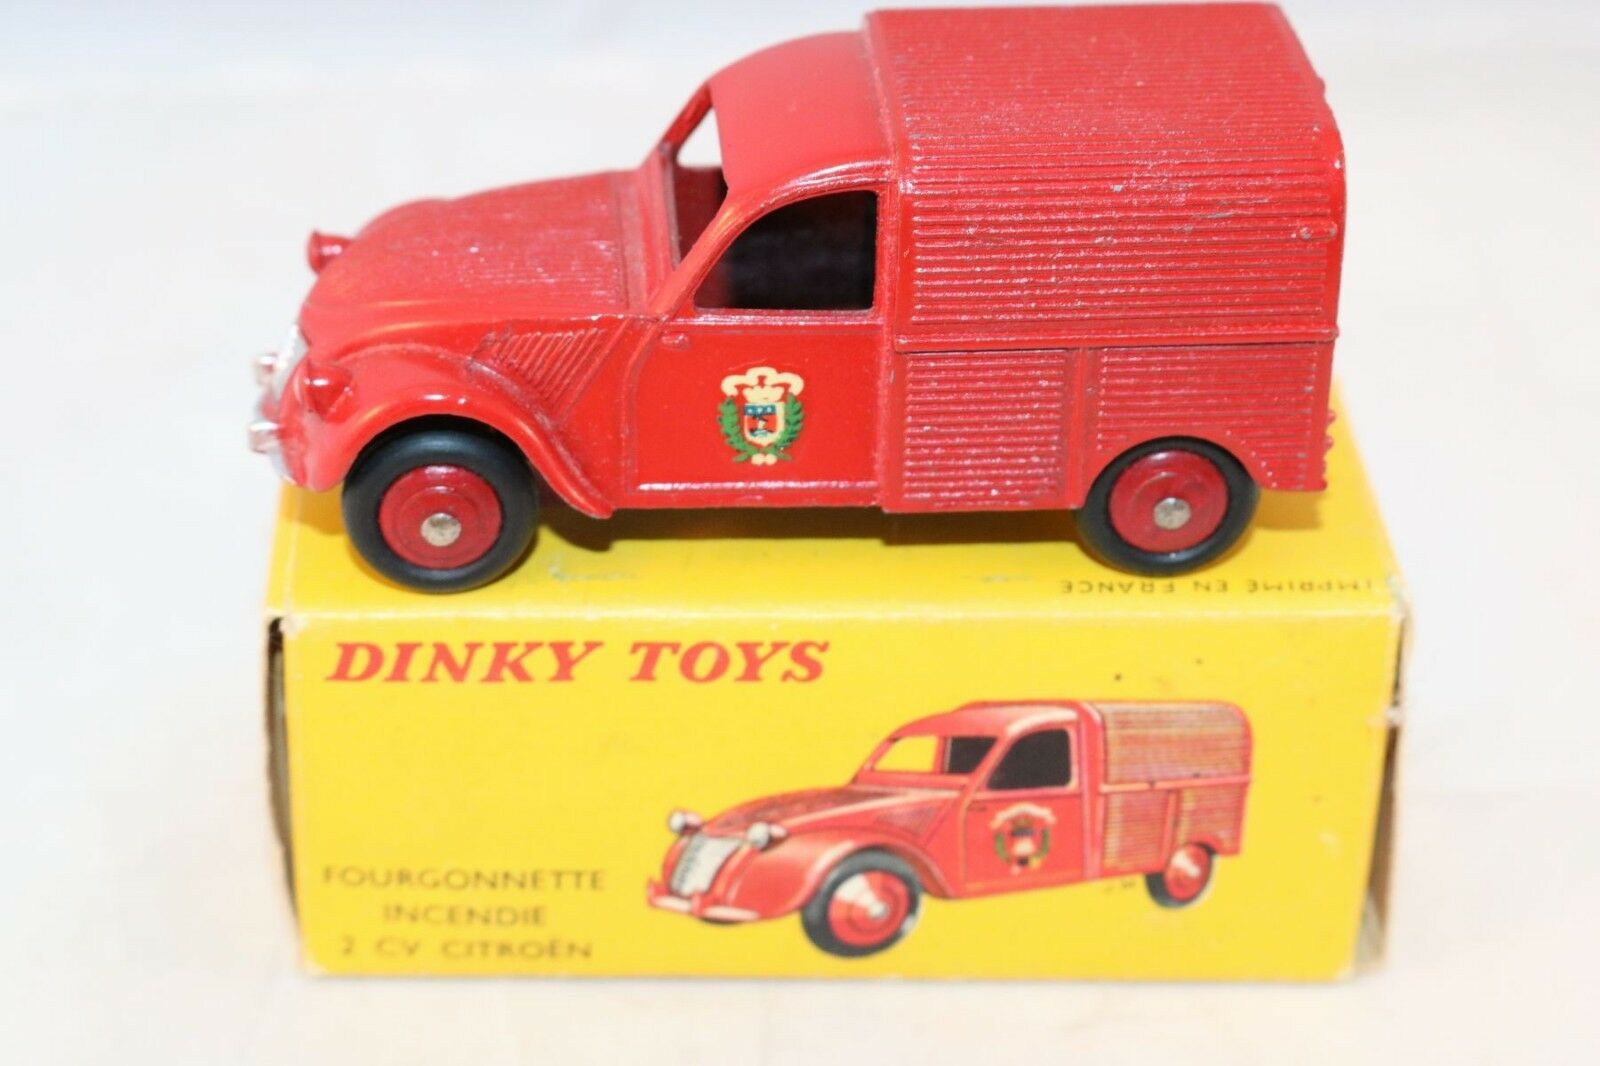 Dinky Toys 25D 25 D Fourgonnette 2 CV Citroen Incendie mint in box a beauty